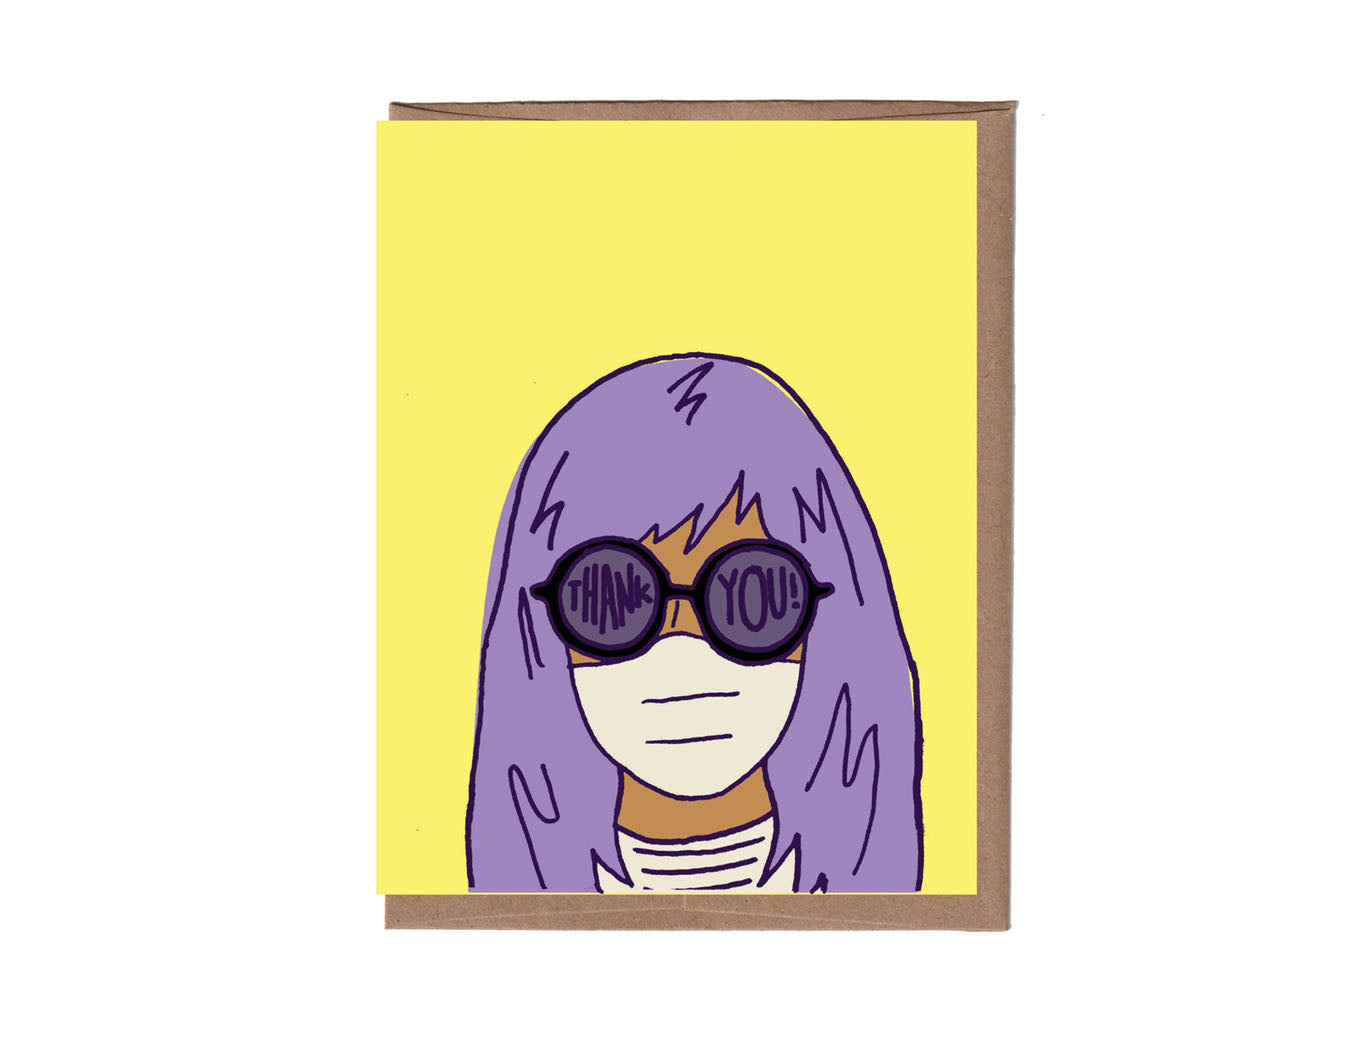 yellow background woman with purple hair, fogged up glasses read thank you! she's wearing a white mask.